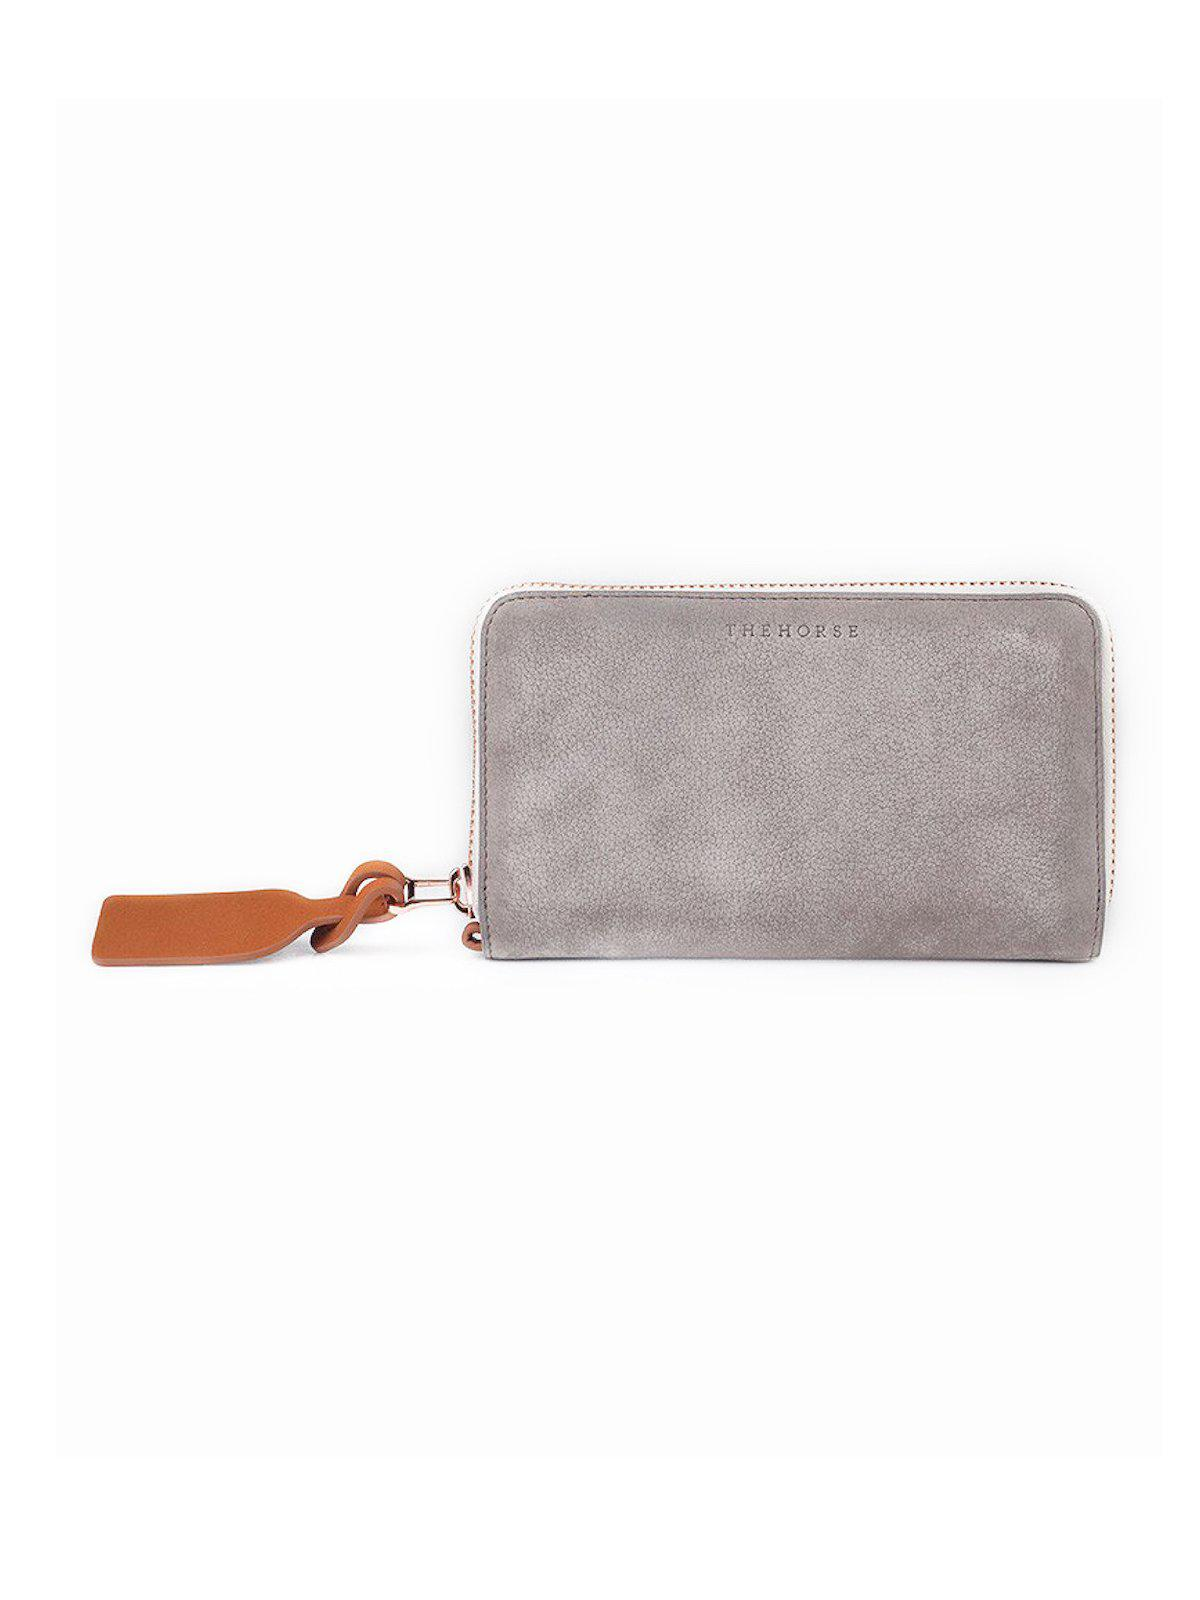 The Horse Block Wallet Grey - MORE by Morello Indonesia